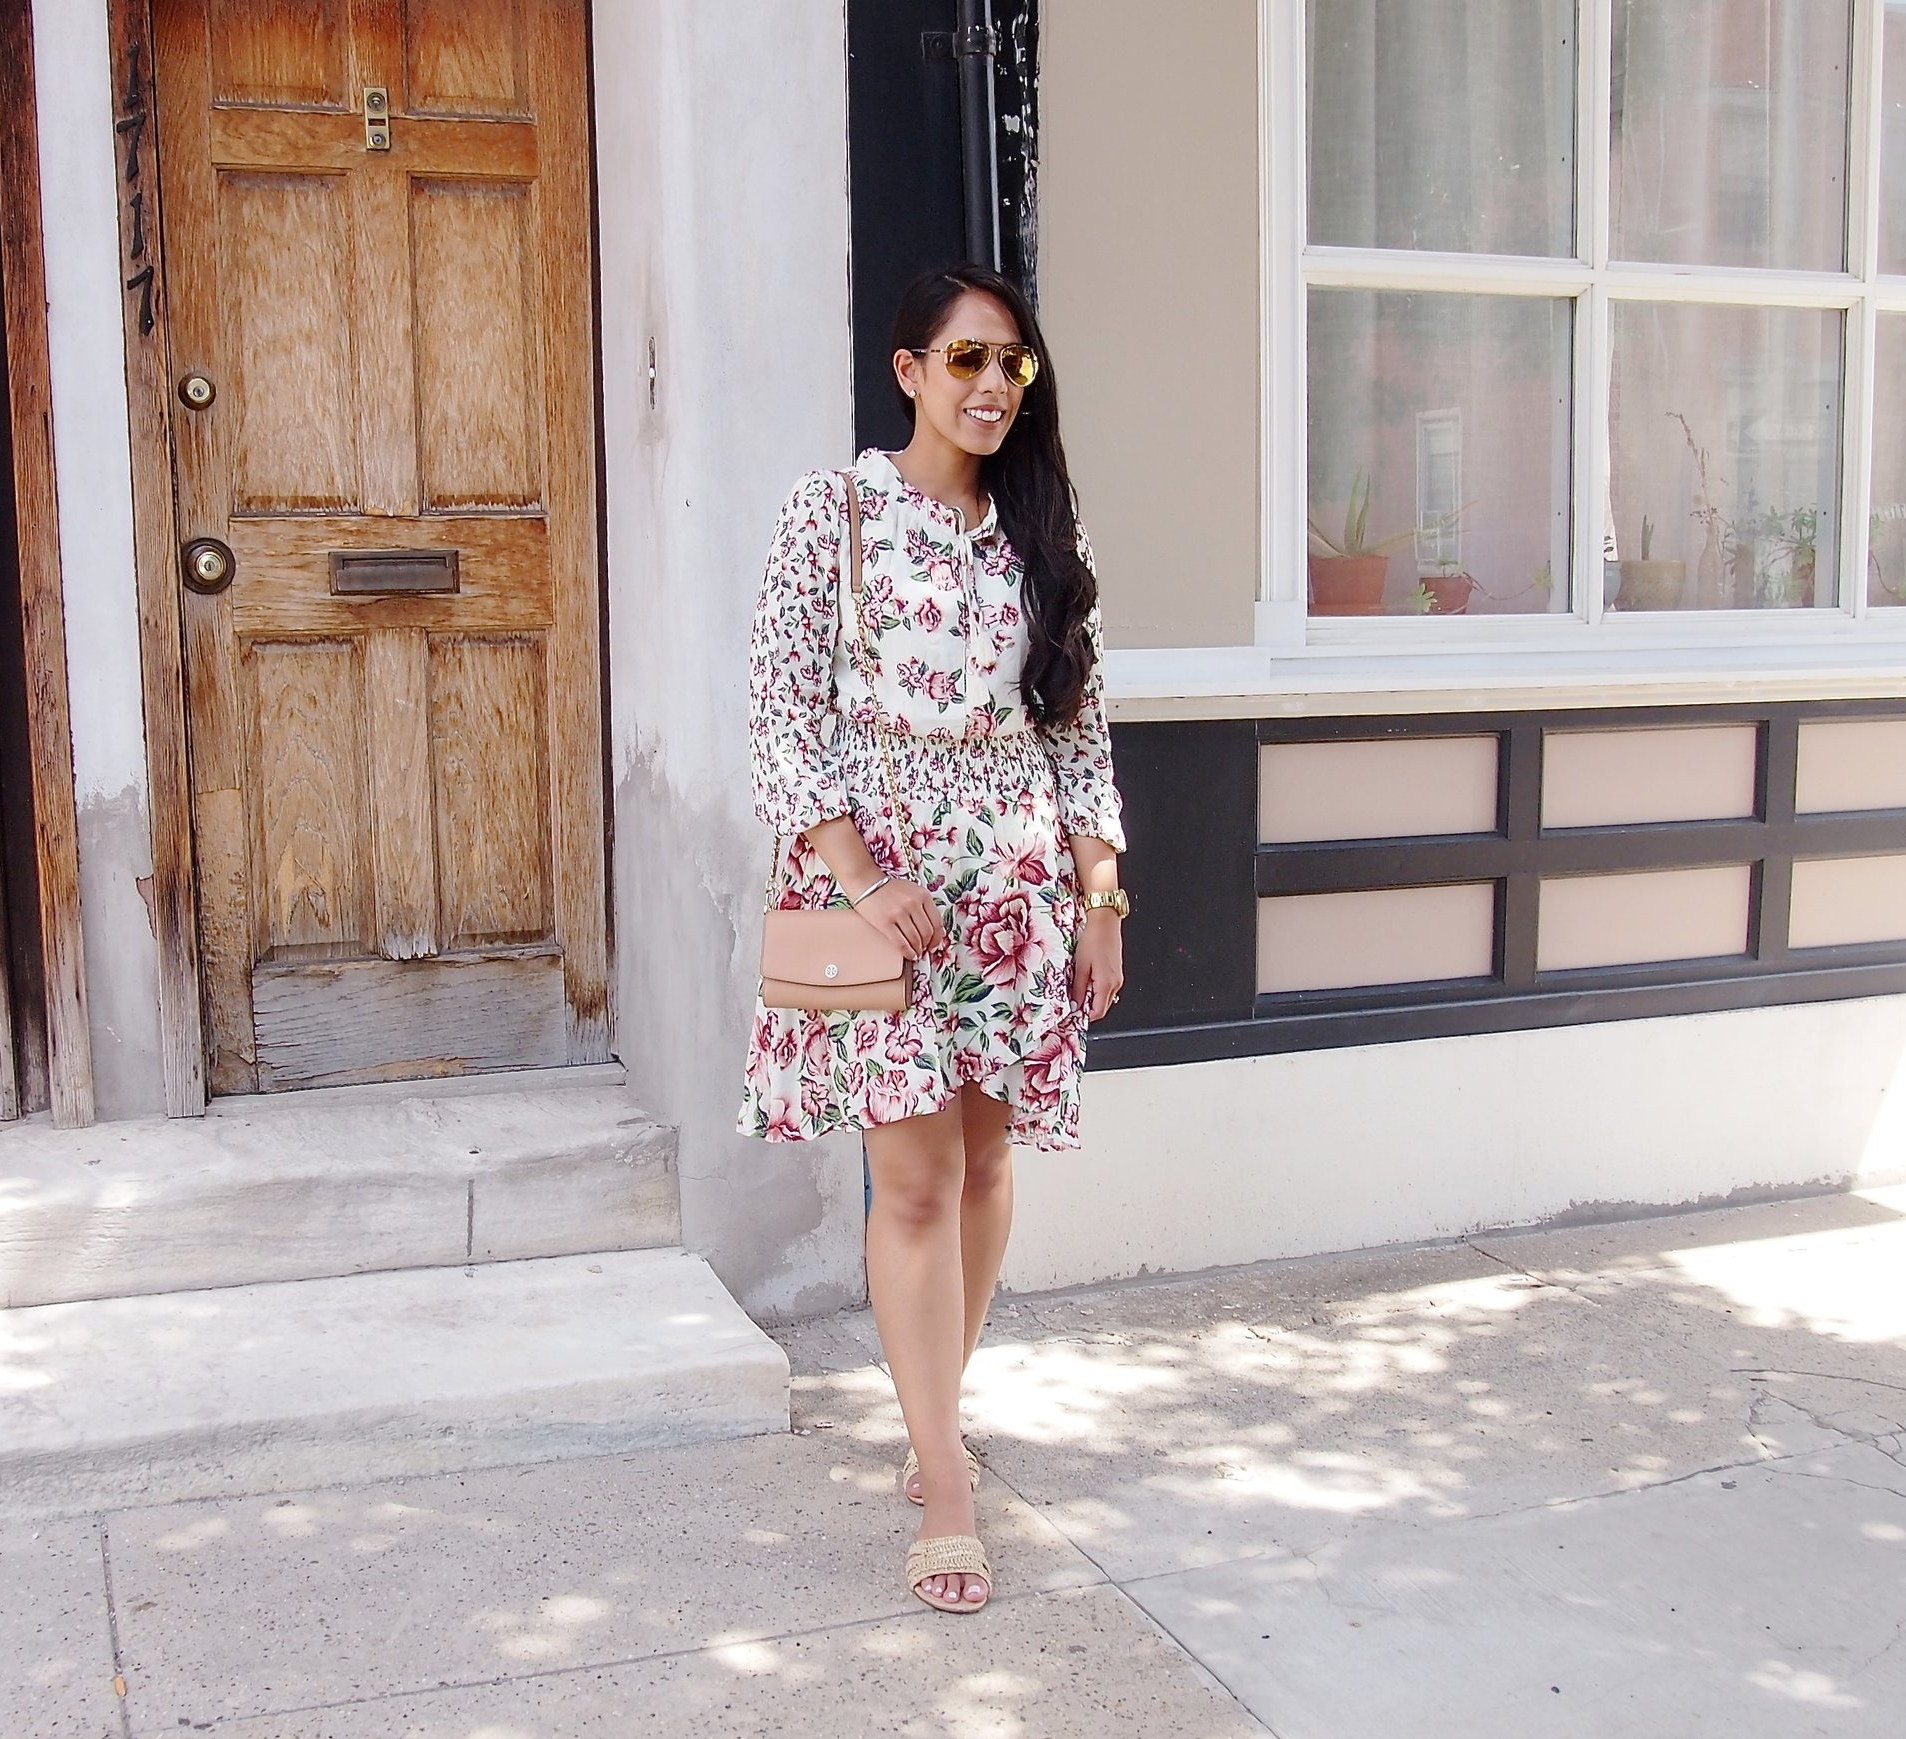 10-Floral-Dresses-to-Wear-This-Summer-Fashion-Blogger.JPG